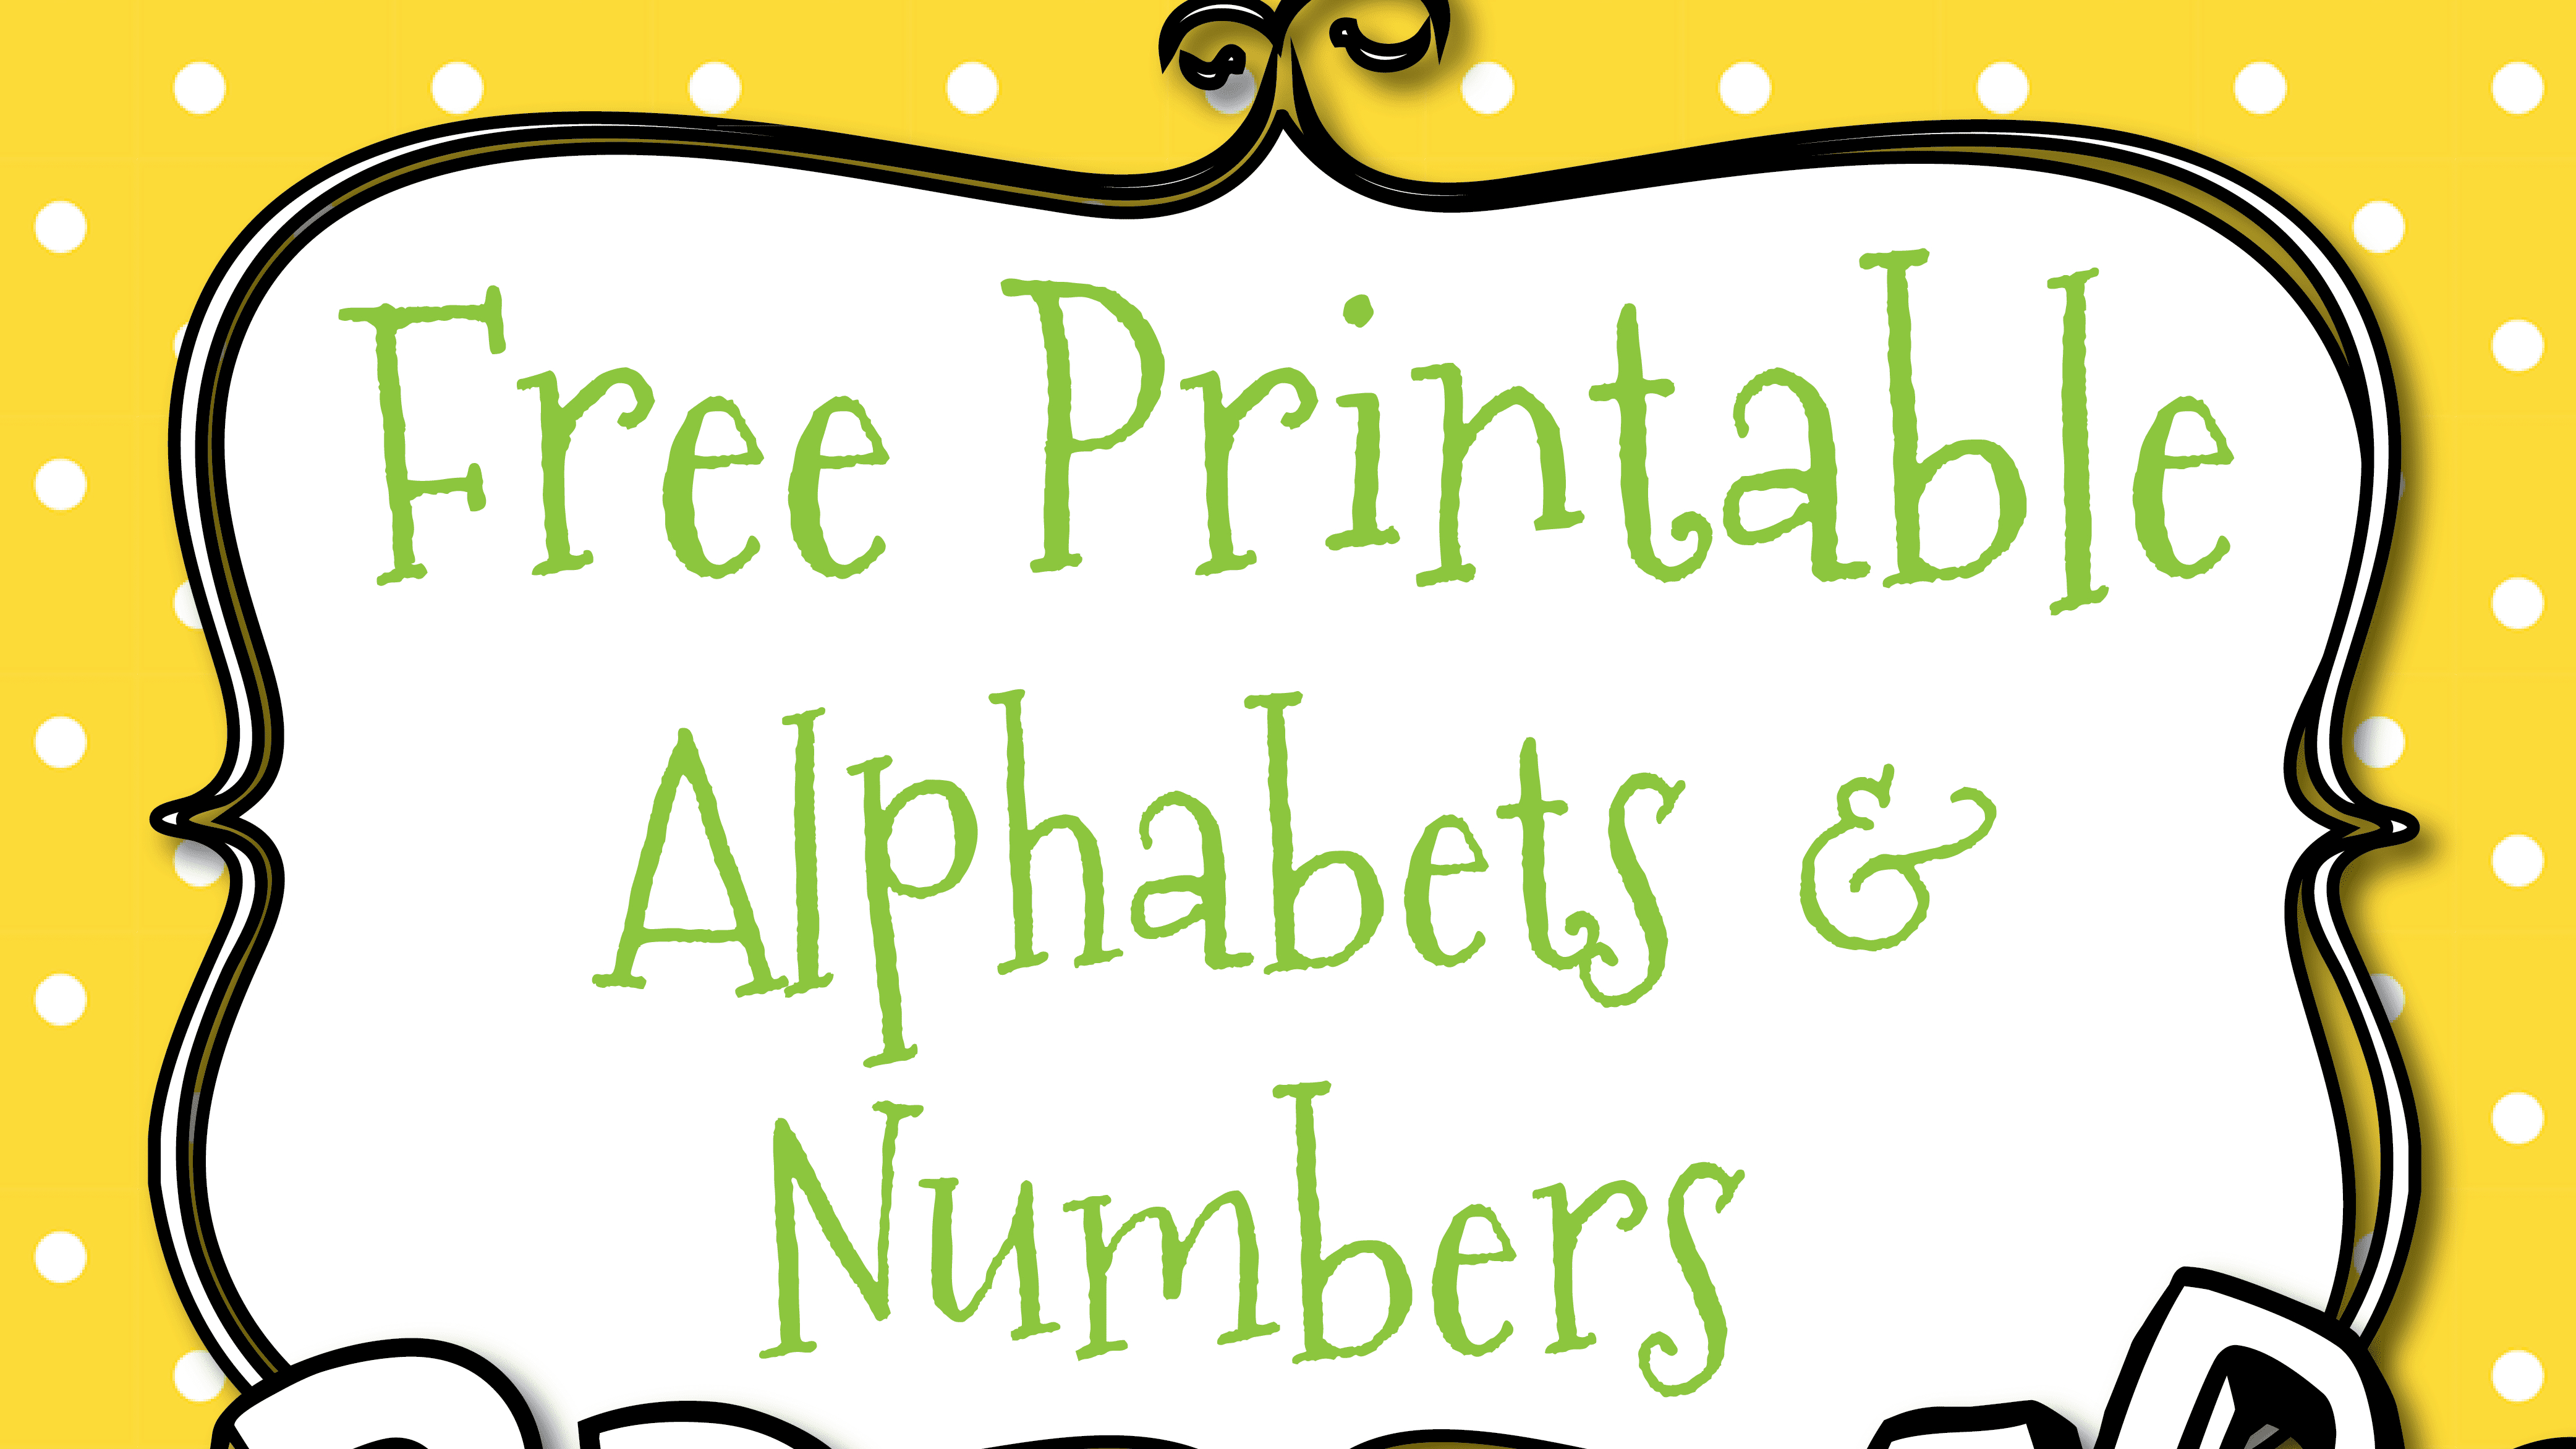 Free Printable Letters And Numbers For Crafts - Free Printable Letters Az